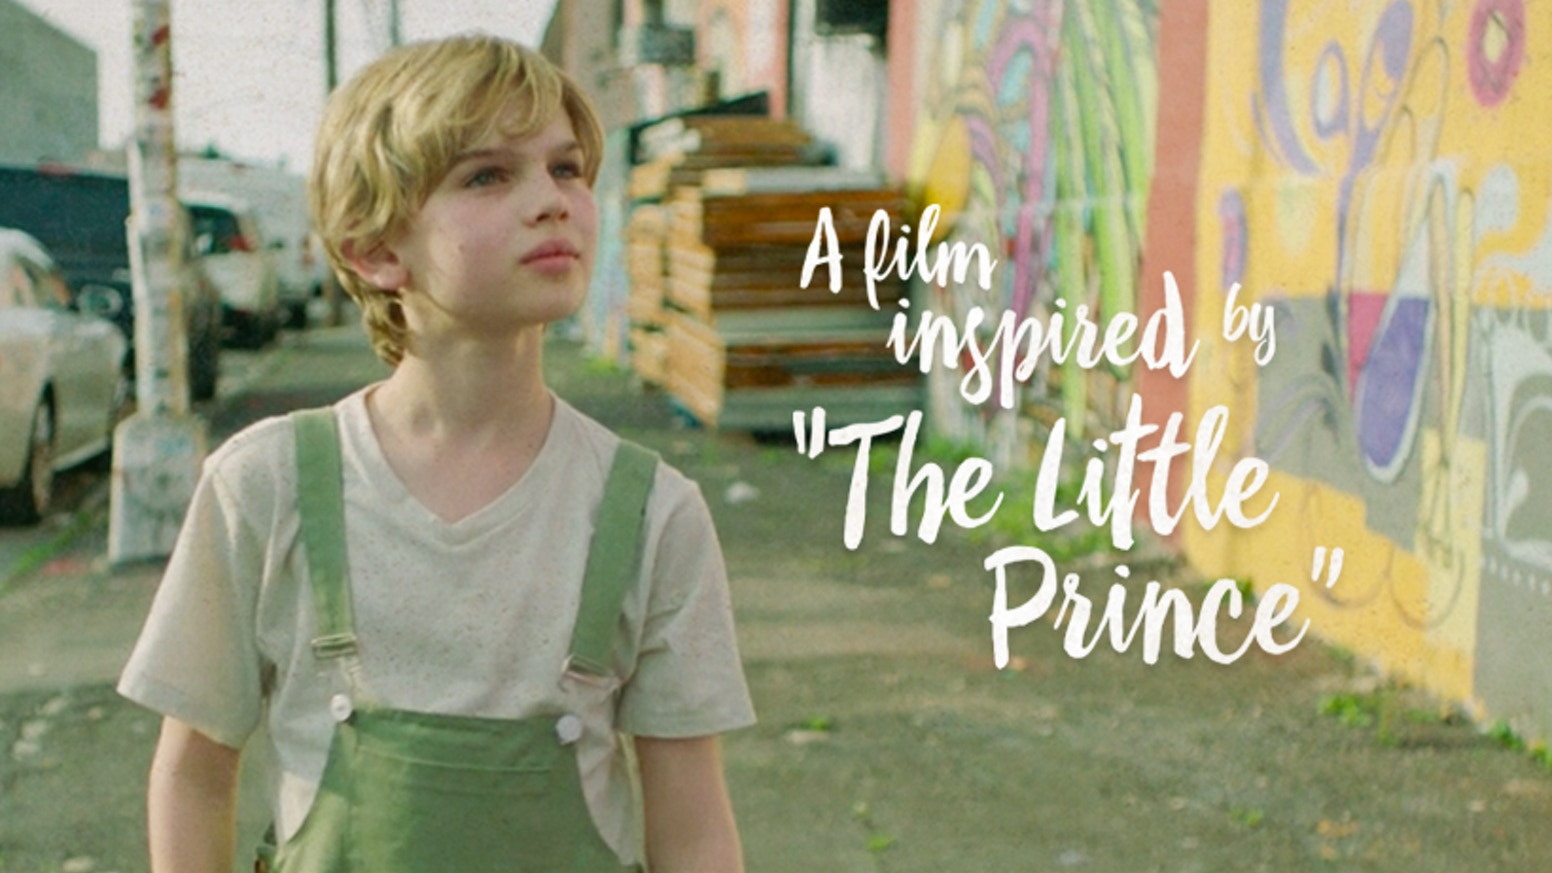 """THE COLOR OF THE SUN"" is a live-action film set in NYC and inspired by Antoine de Saint-Exupéry's timeless work: ""THE LITTLE PRINCE""."